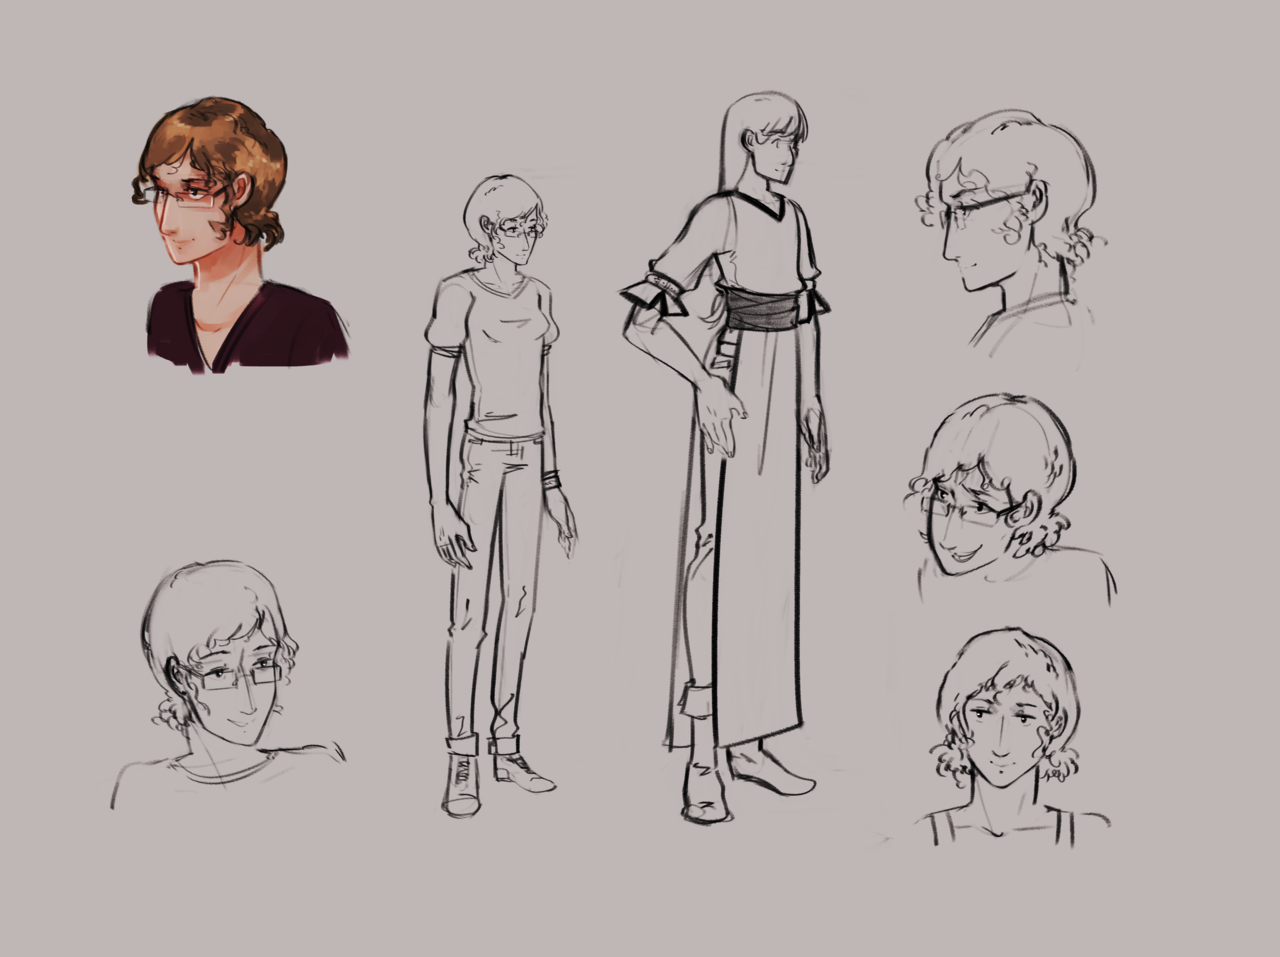 Extras: Danielle reference sheet